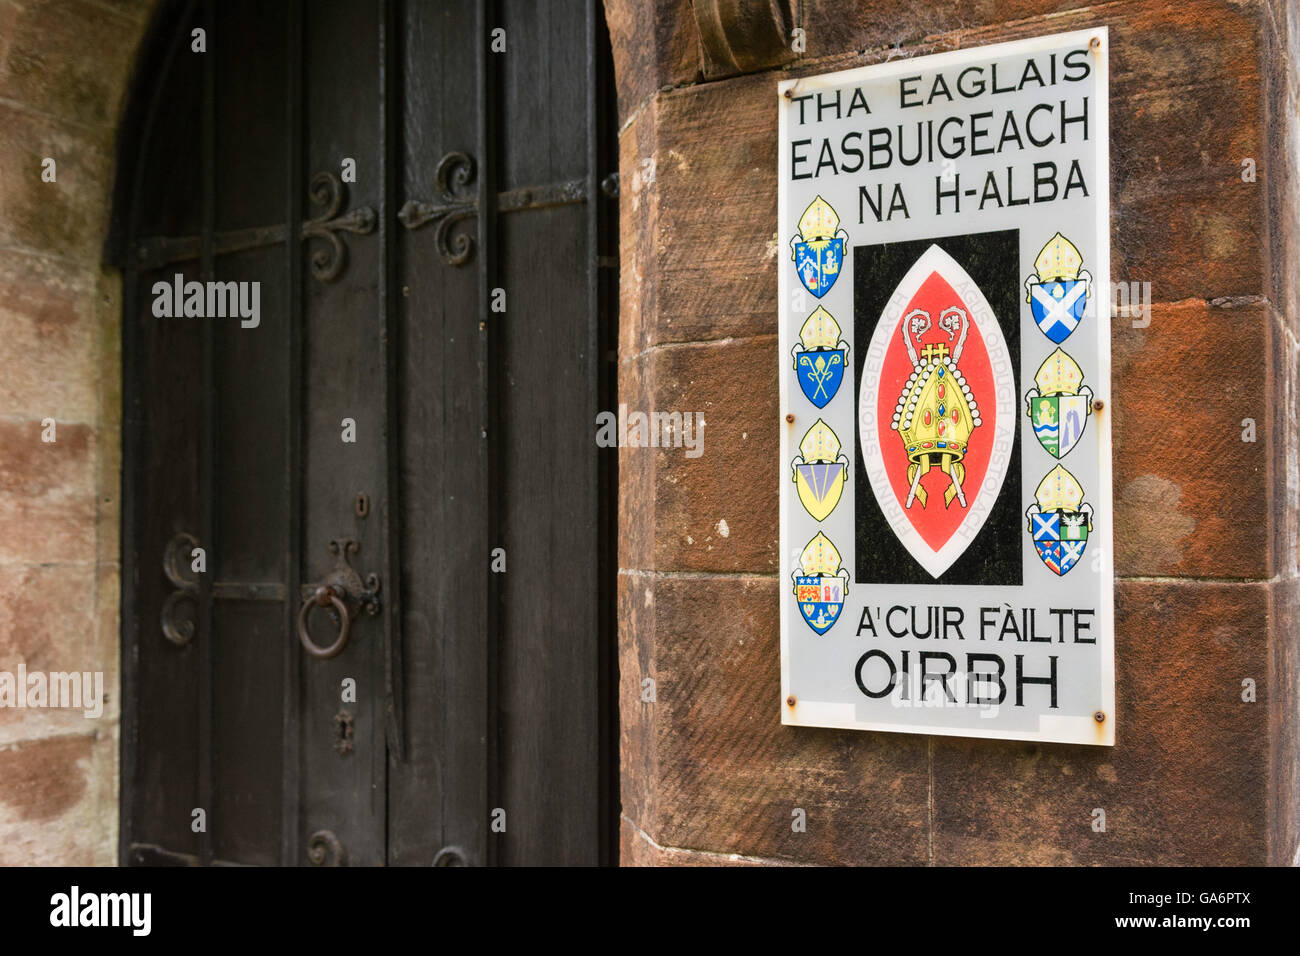 The Scottish Episcopal Church sign by the door of Inveraray bell tower in Argyll, Scotland - written in Scots Gaelic - Stock Image